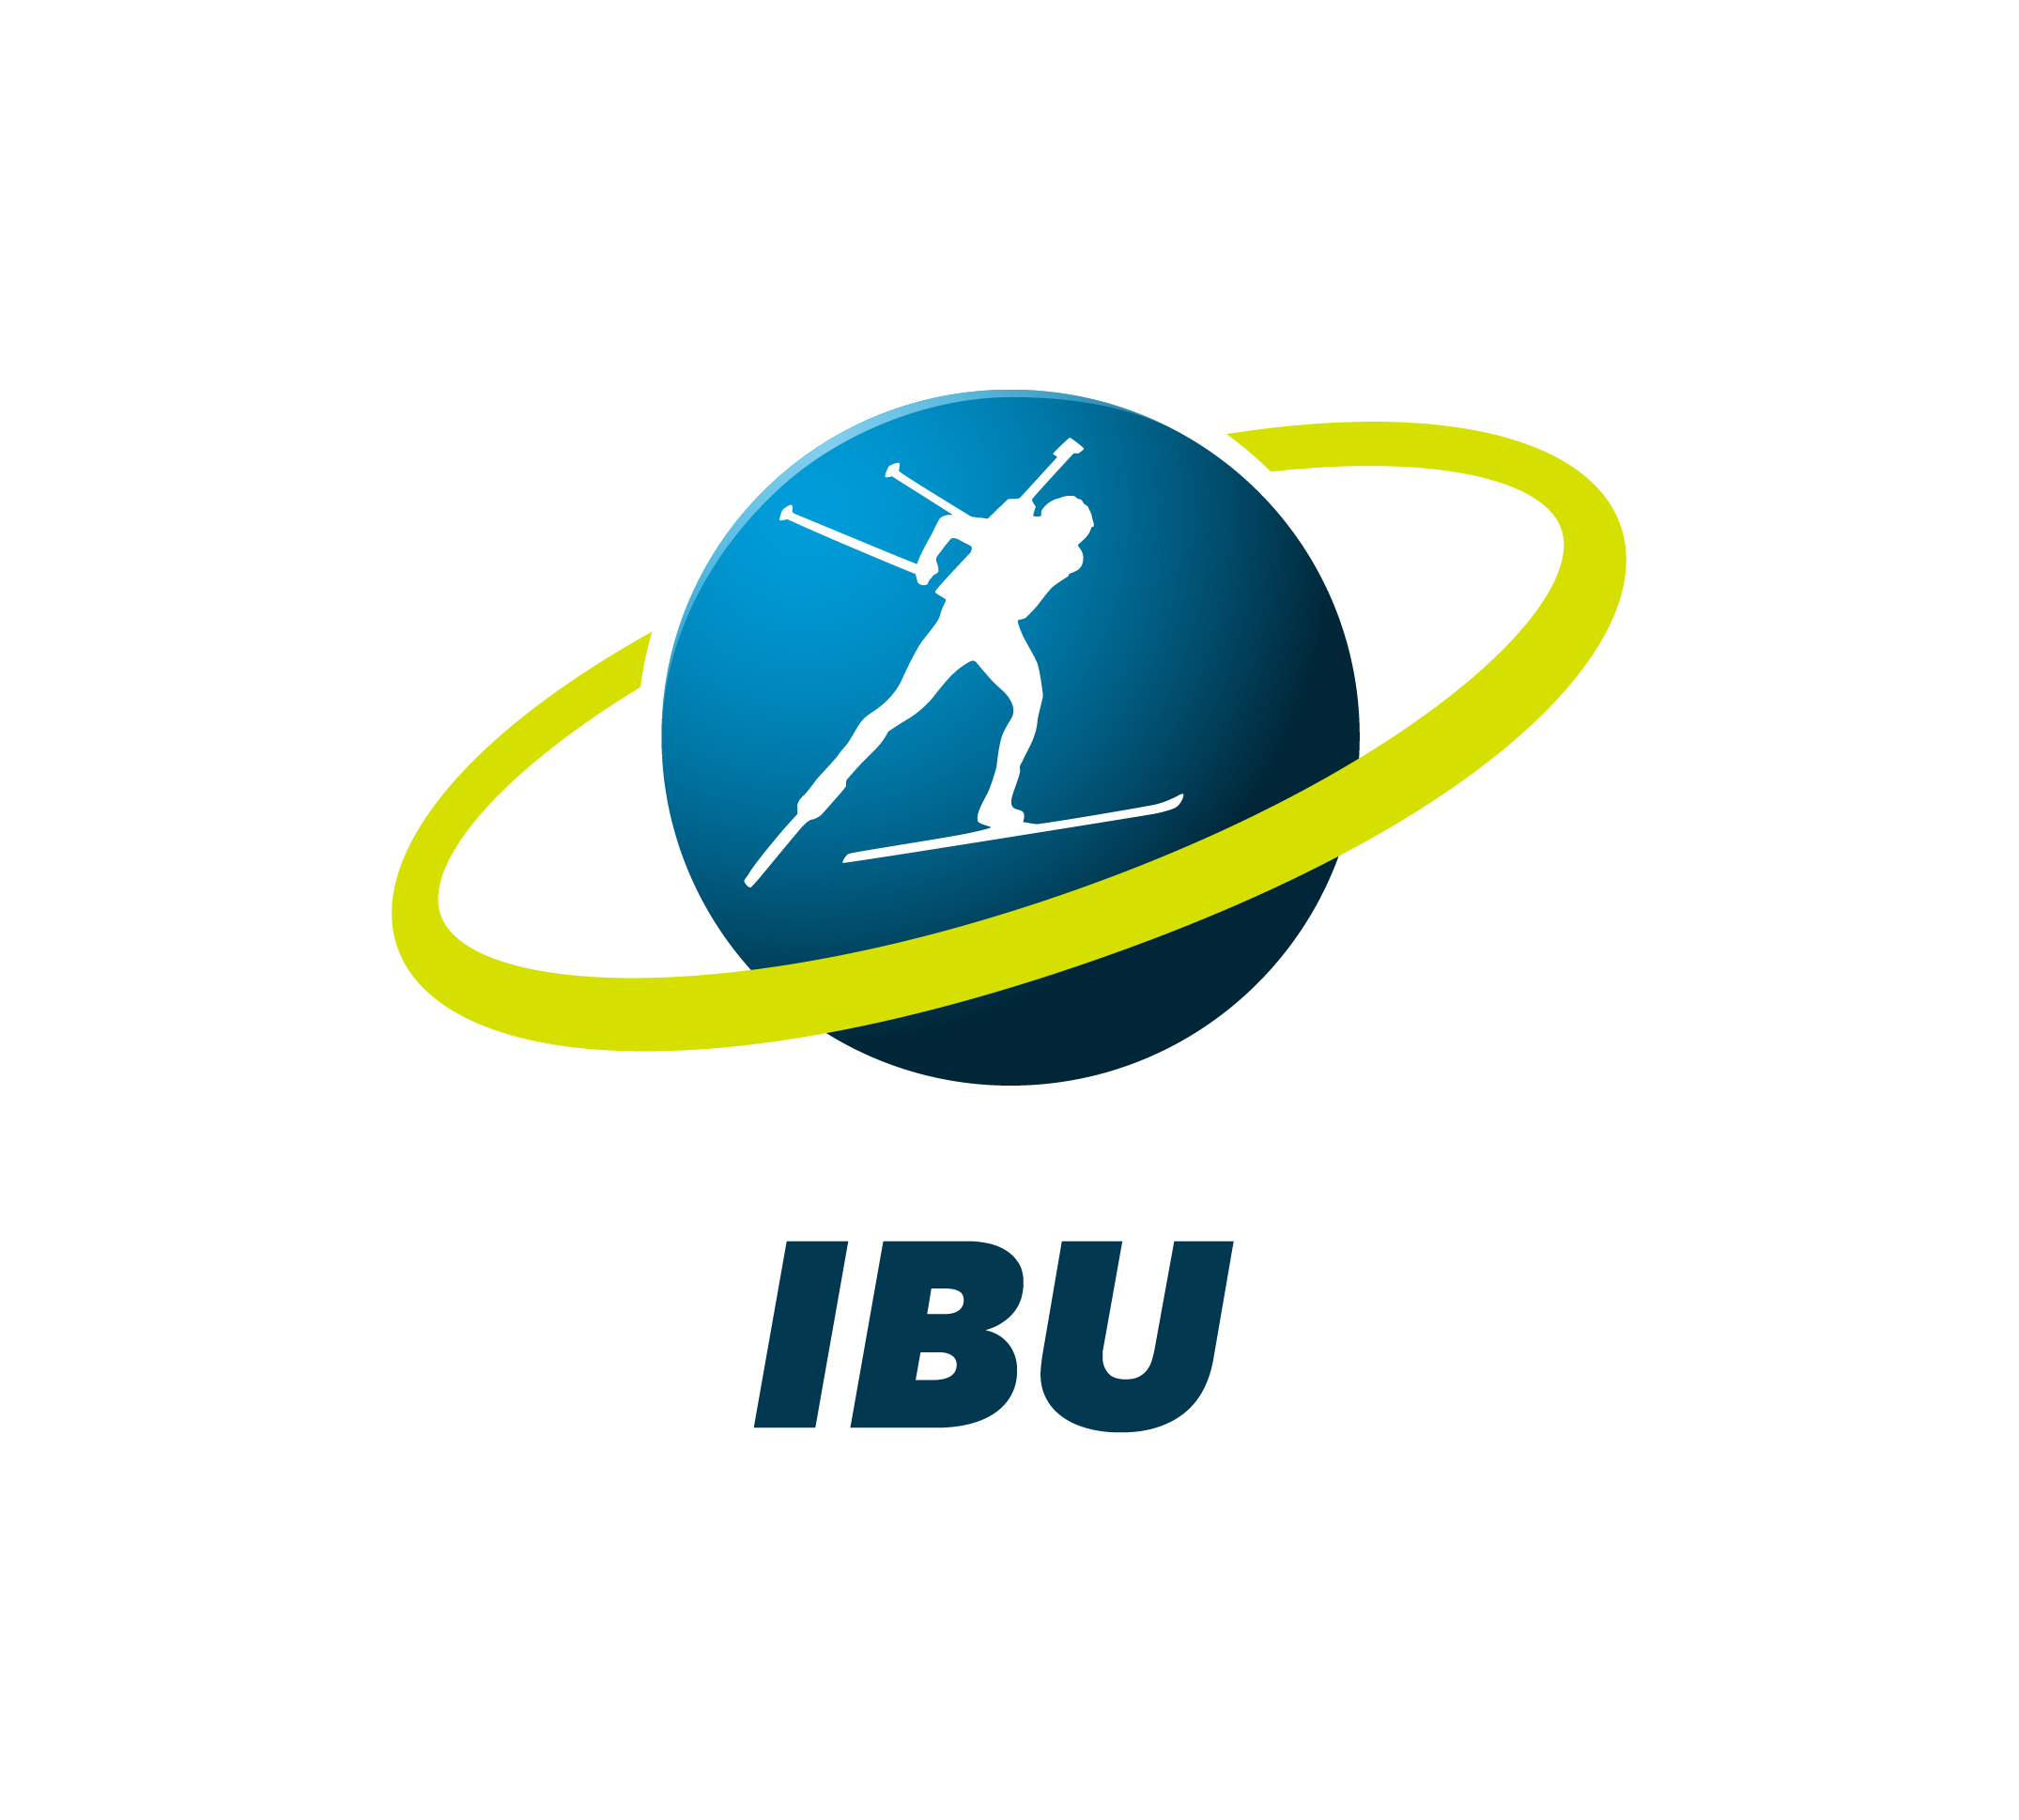 fis logo international biathlon union